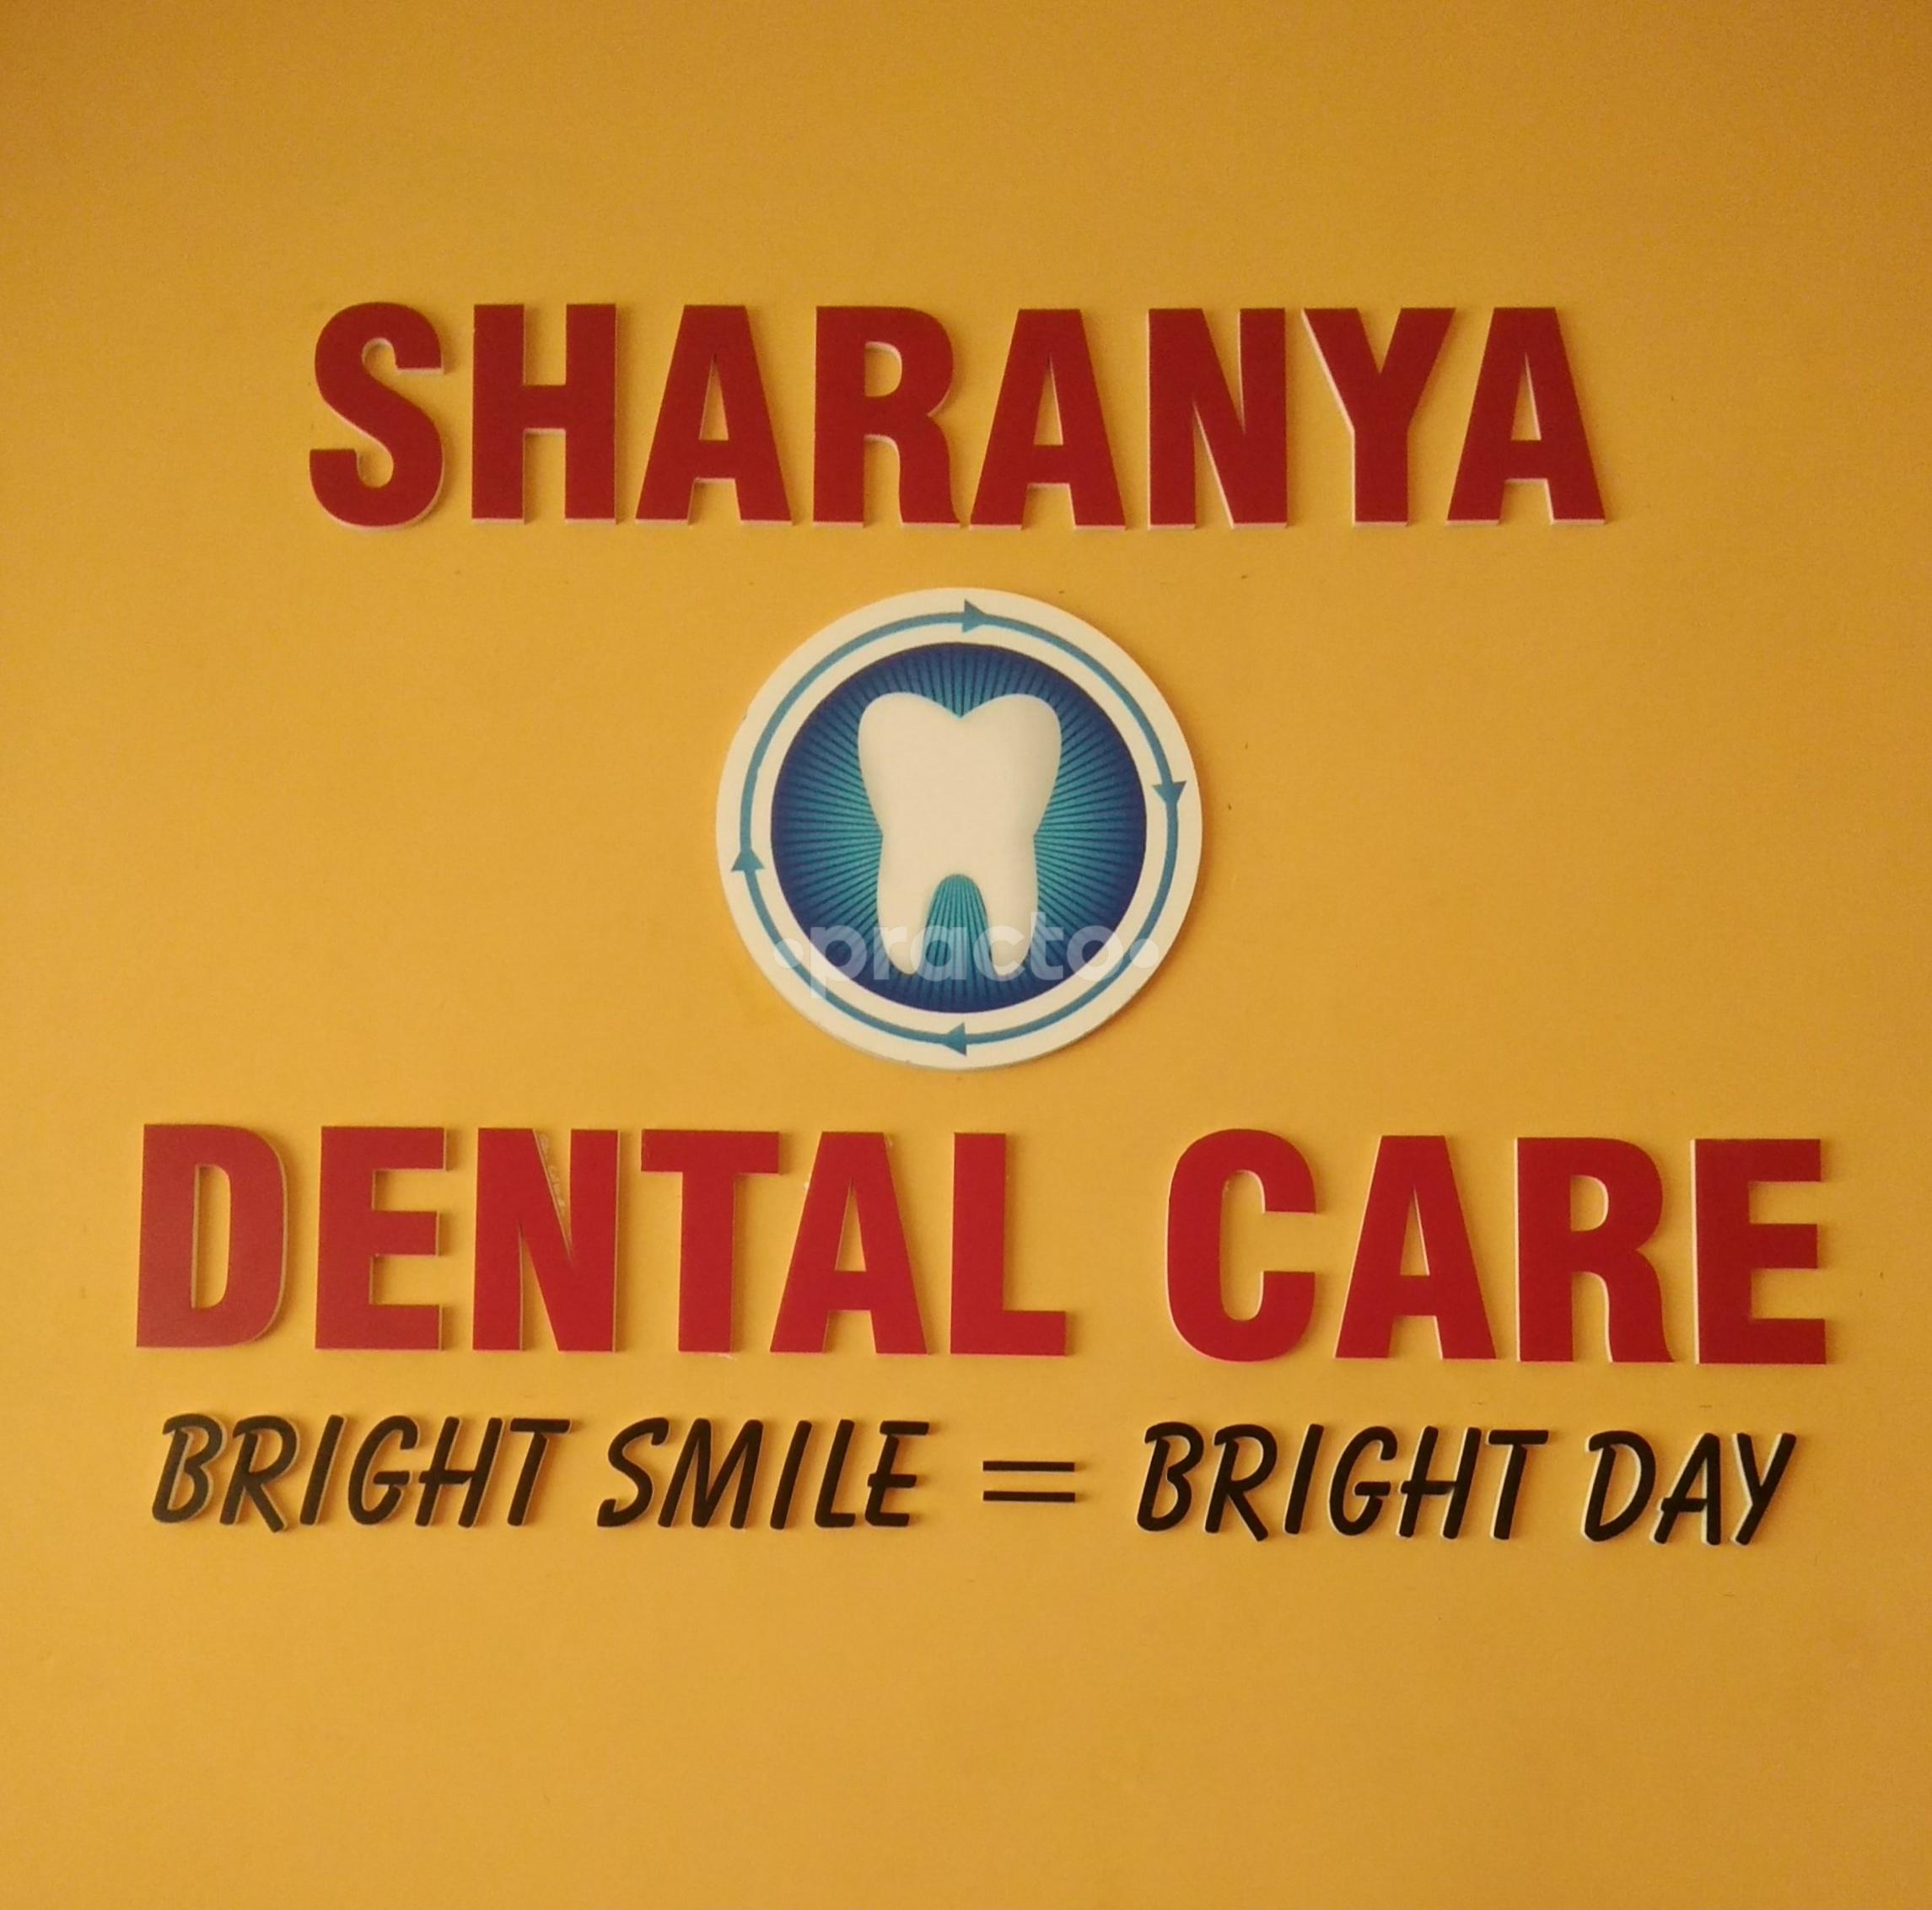 Sharanya Dental Care